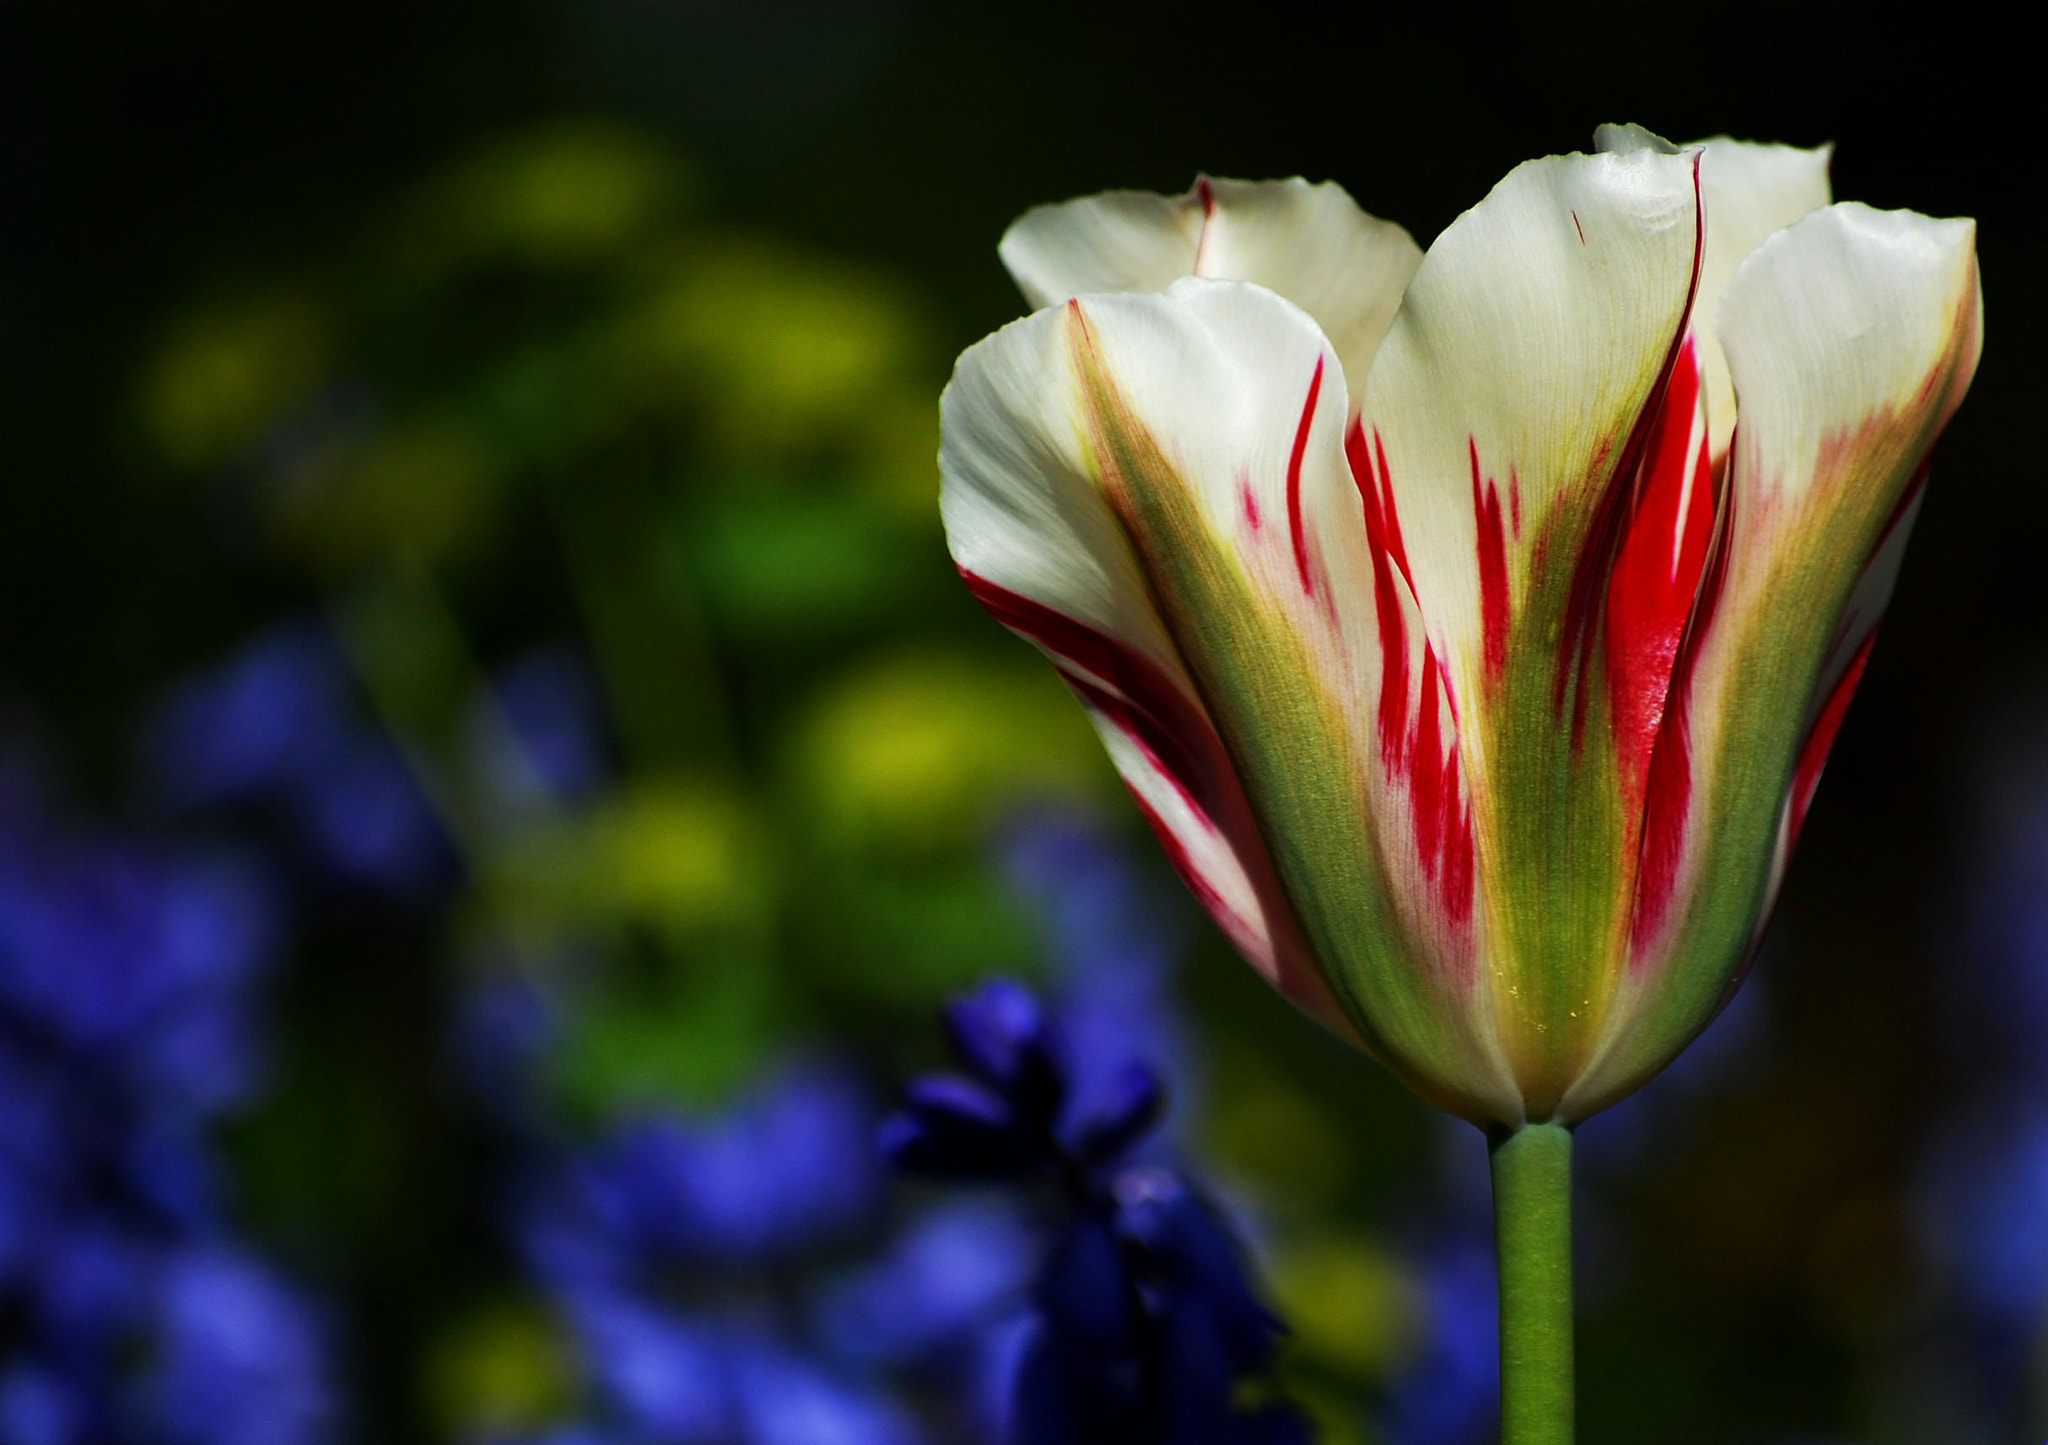 Photograph stripes by Hanne Reid on 500px